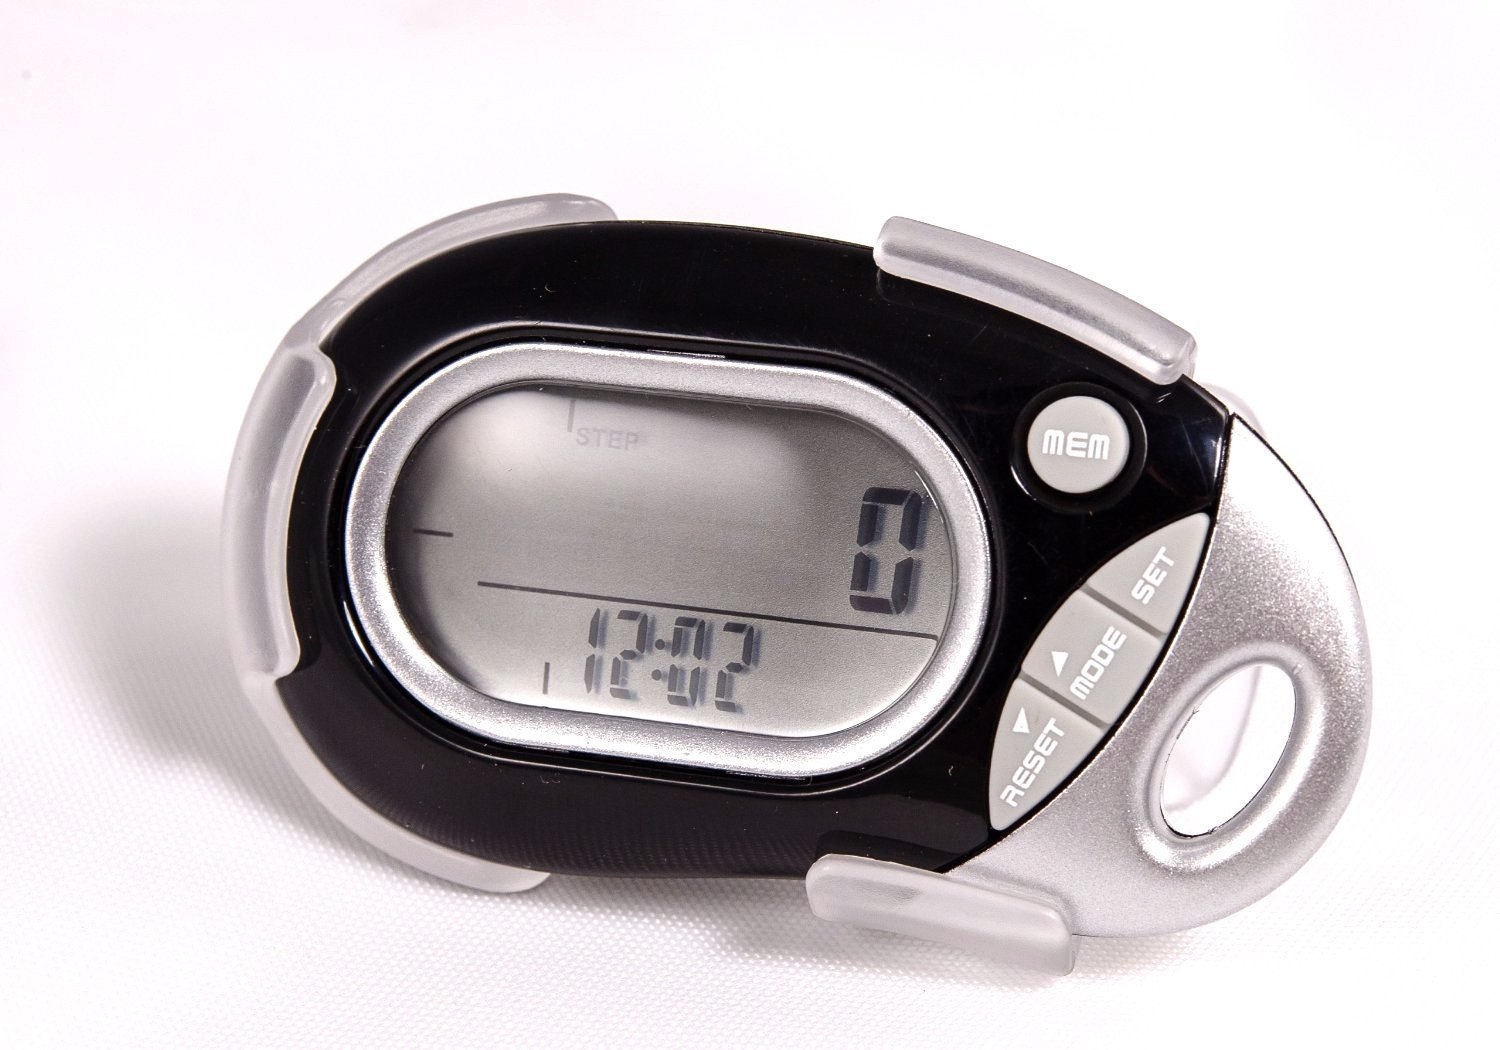 Pedusa PE-771 Tri-Axis Multi-Function Pocket Pedometer - Blue with Holster/Belt Clip